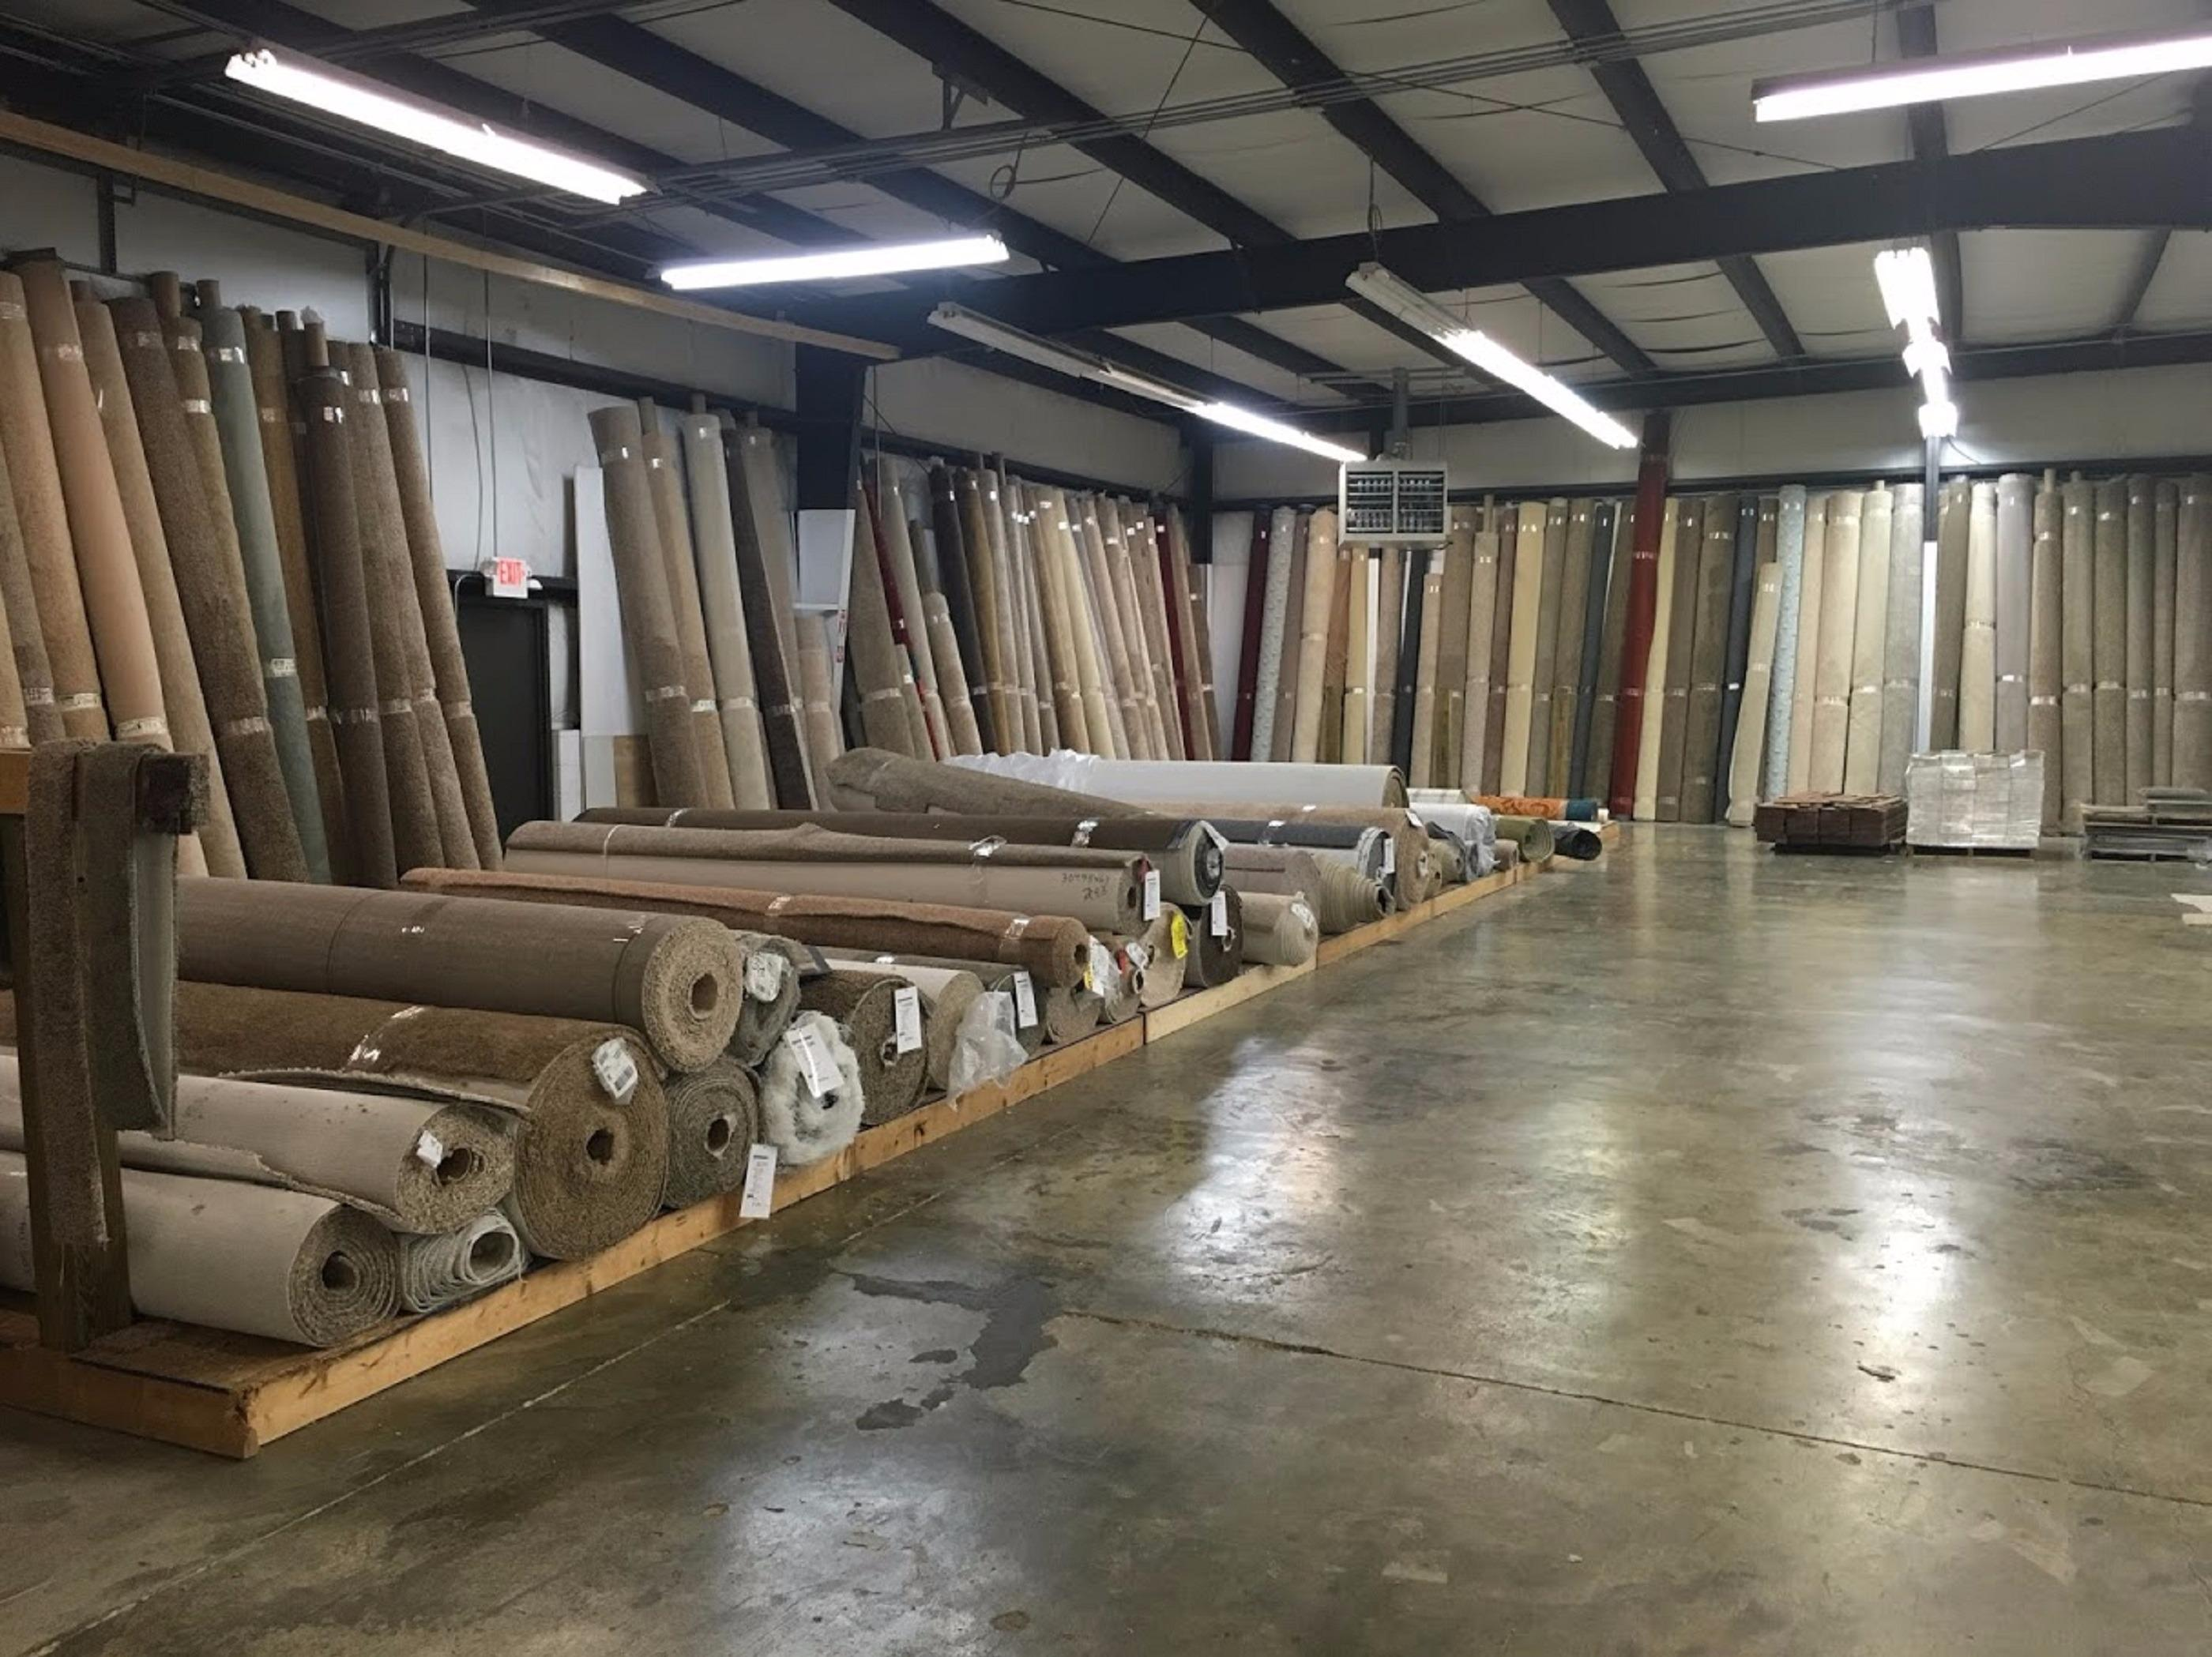 Dayton Carpet Liquidators, Inc. image 4